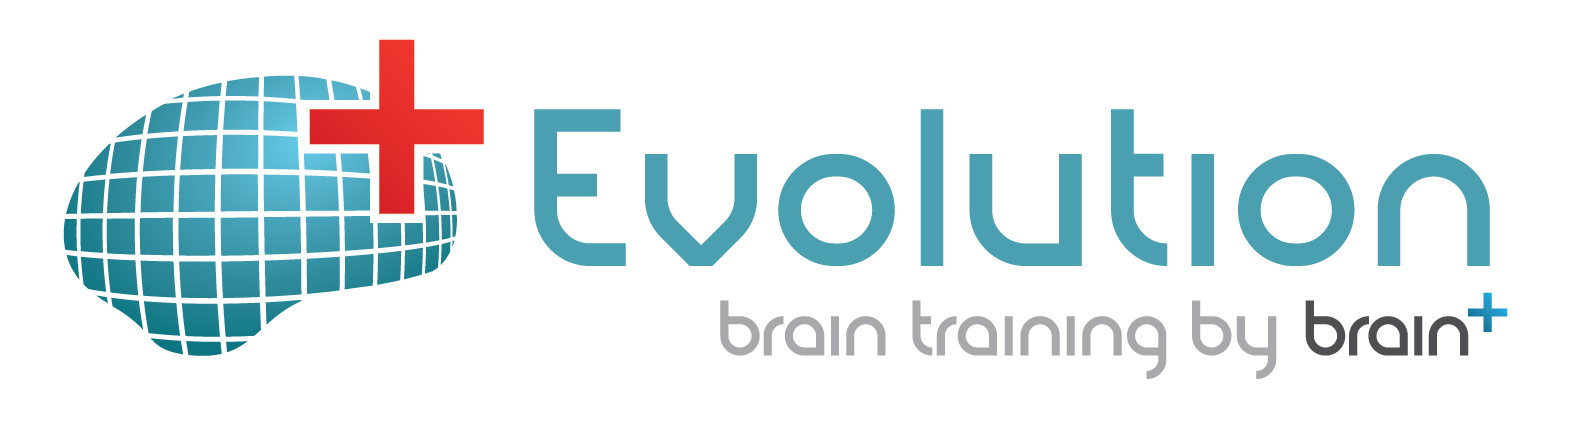 EvolutionPlusBrainLogo-01